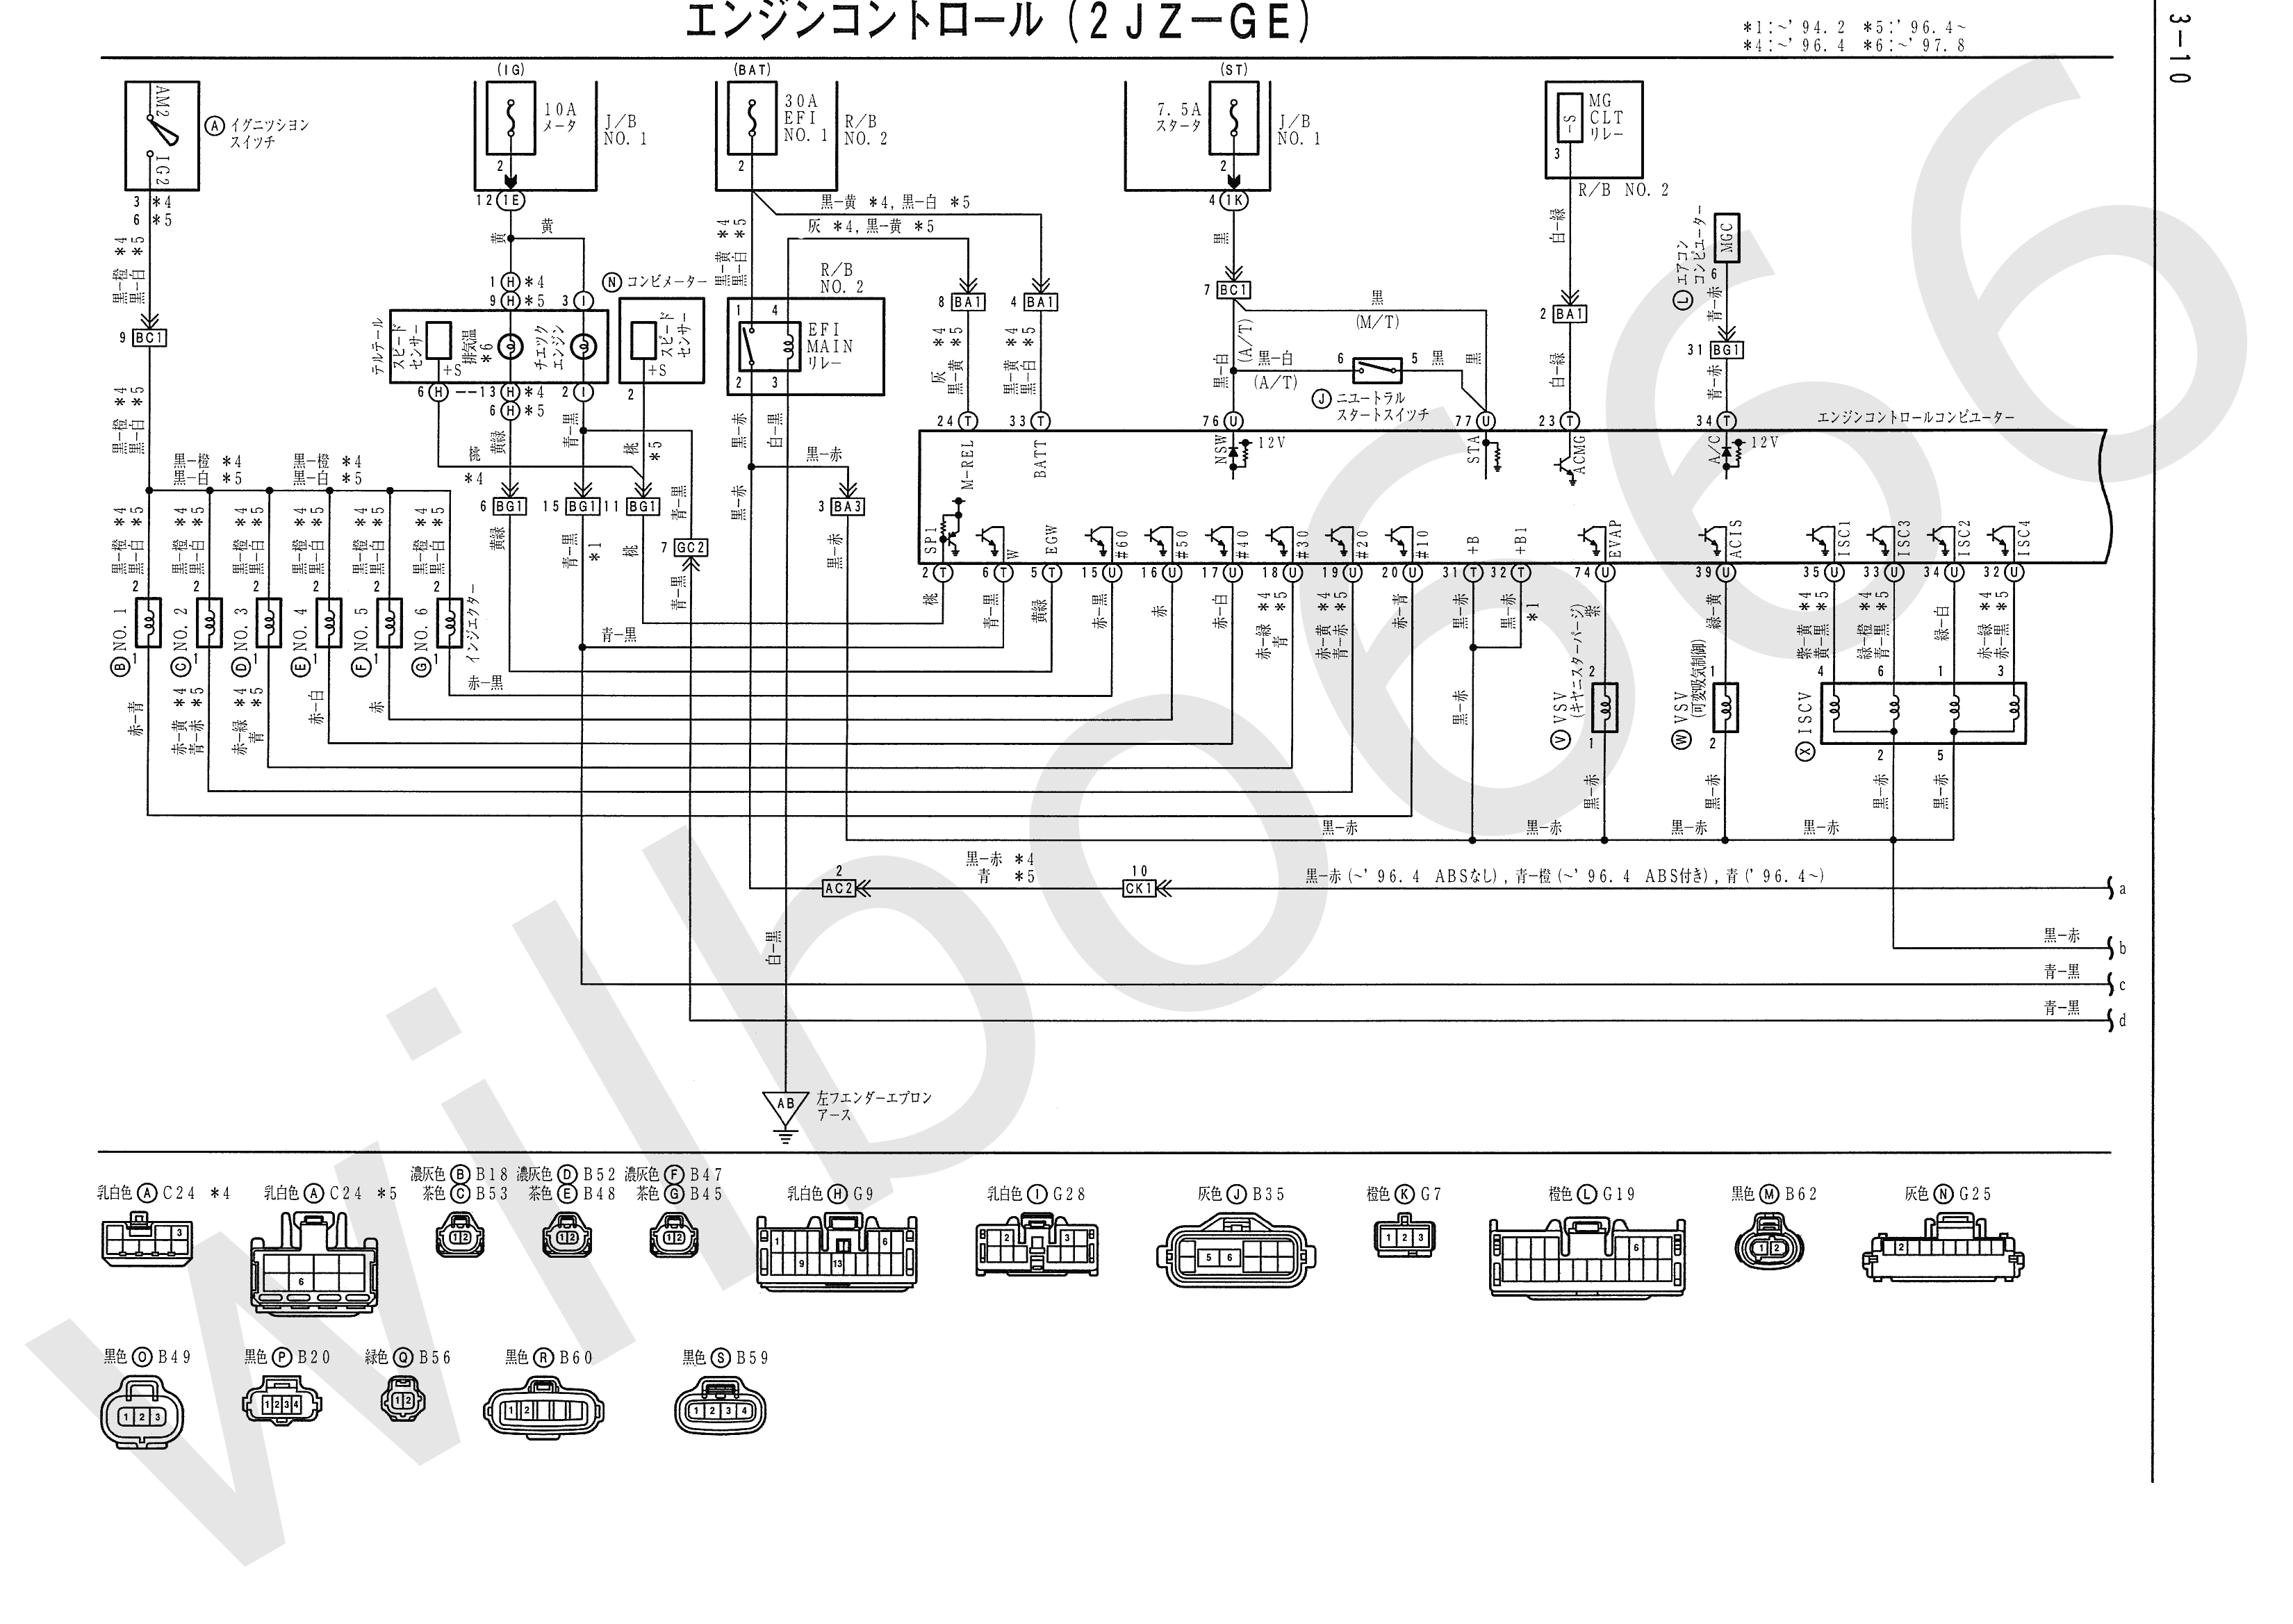 JZA80 Electrical Wiring Diagram 6742505 3 10 wilbo666 2jz ge jza80 supra engine wiring ge wiring diagrams at panicattacktreatment.co